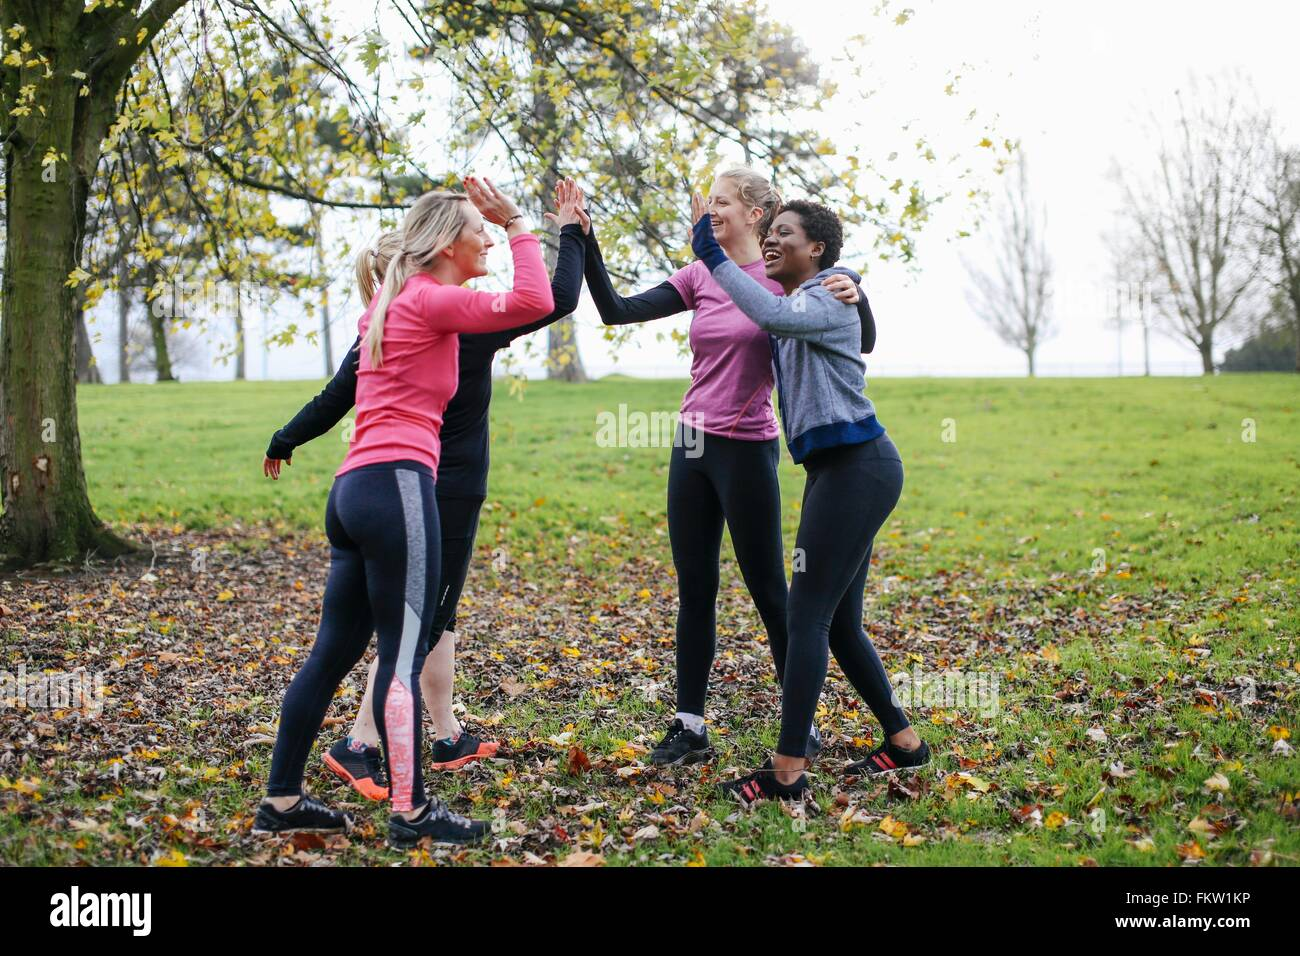 Women and teenager preparing to train giving each other a high five in park - Stock Image